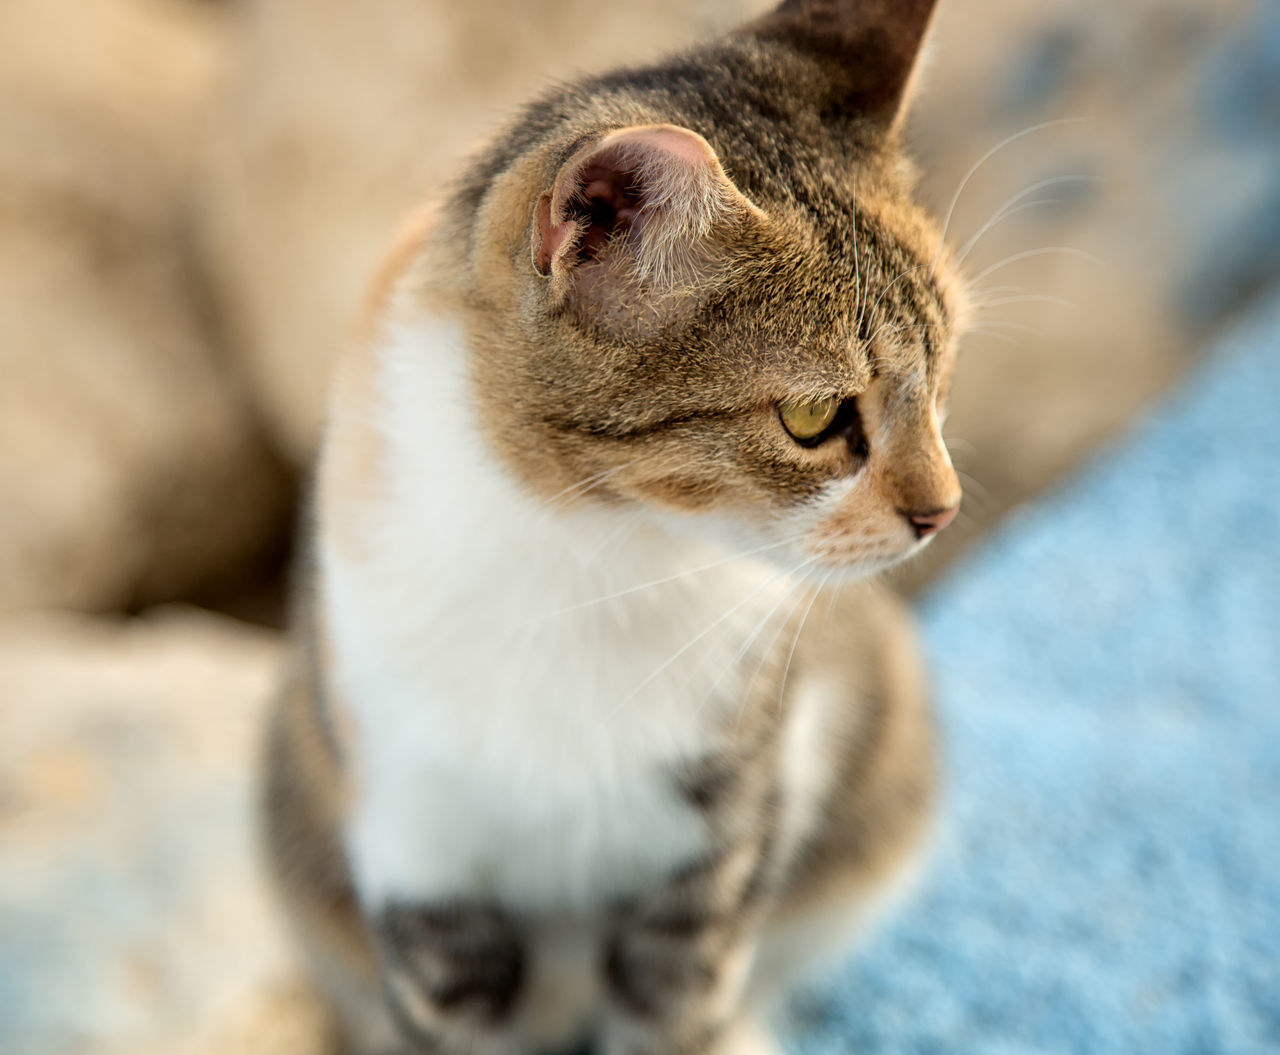 Street Cats Animal Themes Boulder Cats Close-up Coastline Day Domestic Animals Domestic Cat Feline Feline Portraits Mammal Mersin Turkey Nature No People One Animal Outdoors Pets Rock Formation Street Cats Yawning